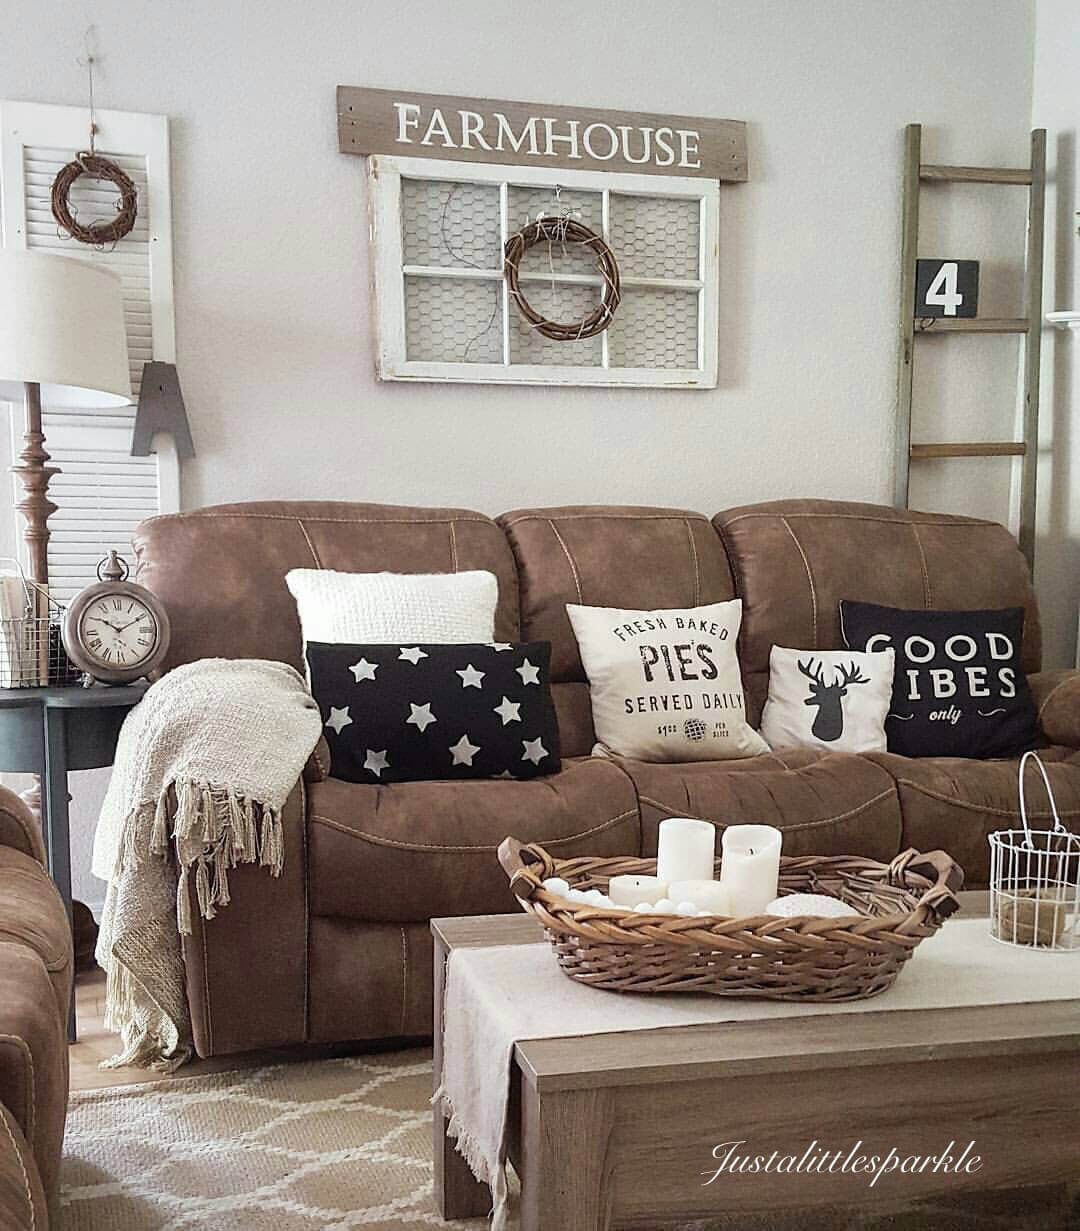 Family Room Decorating Styles Part - 37: Microfiber Couch Farmhouse Living Room Decor Ideas